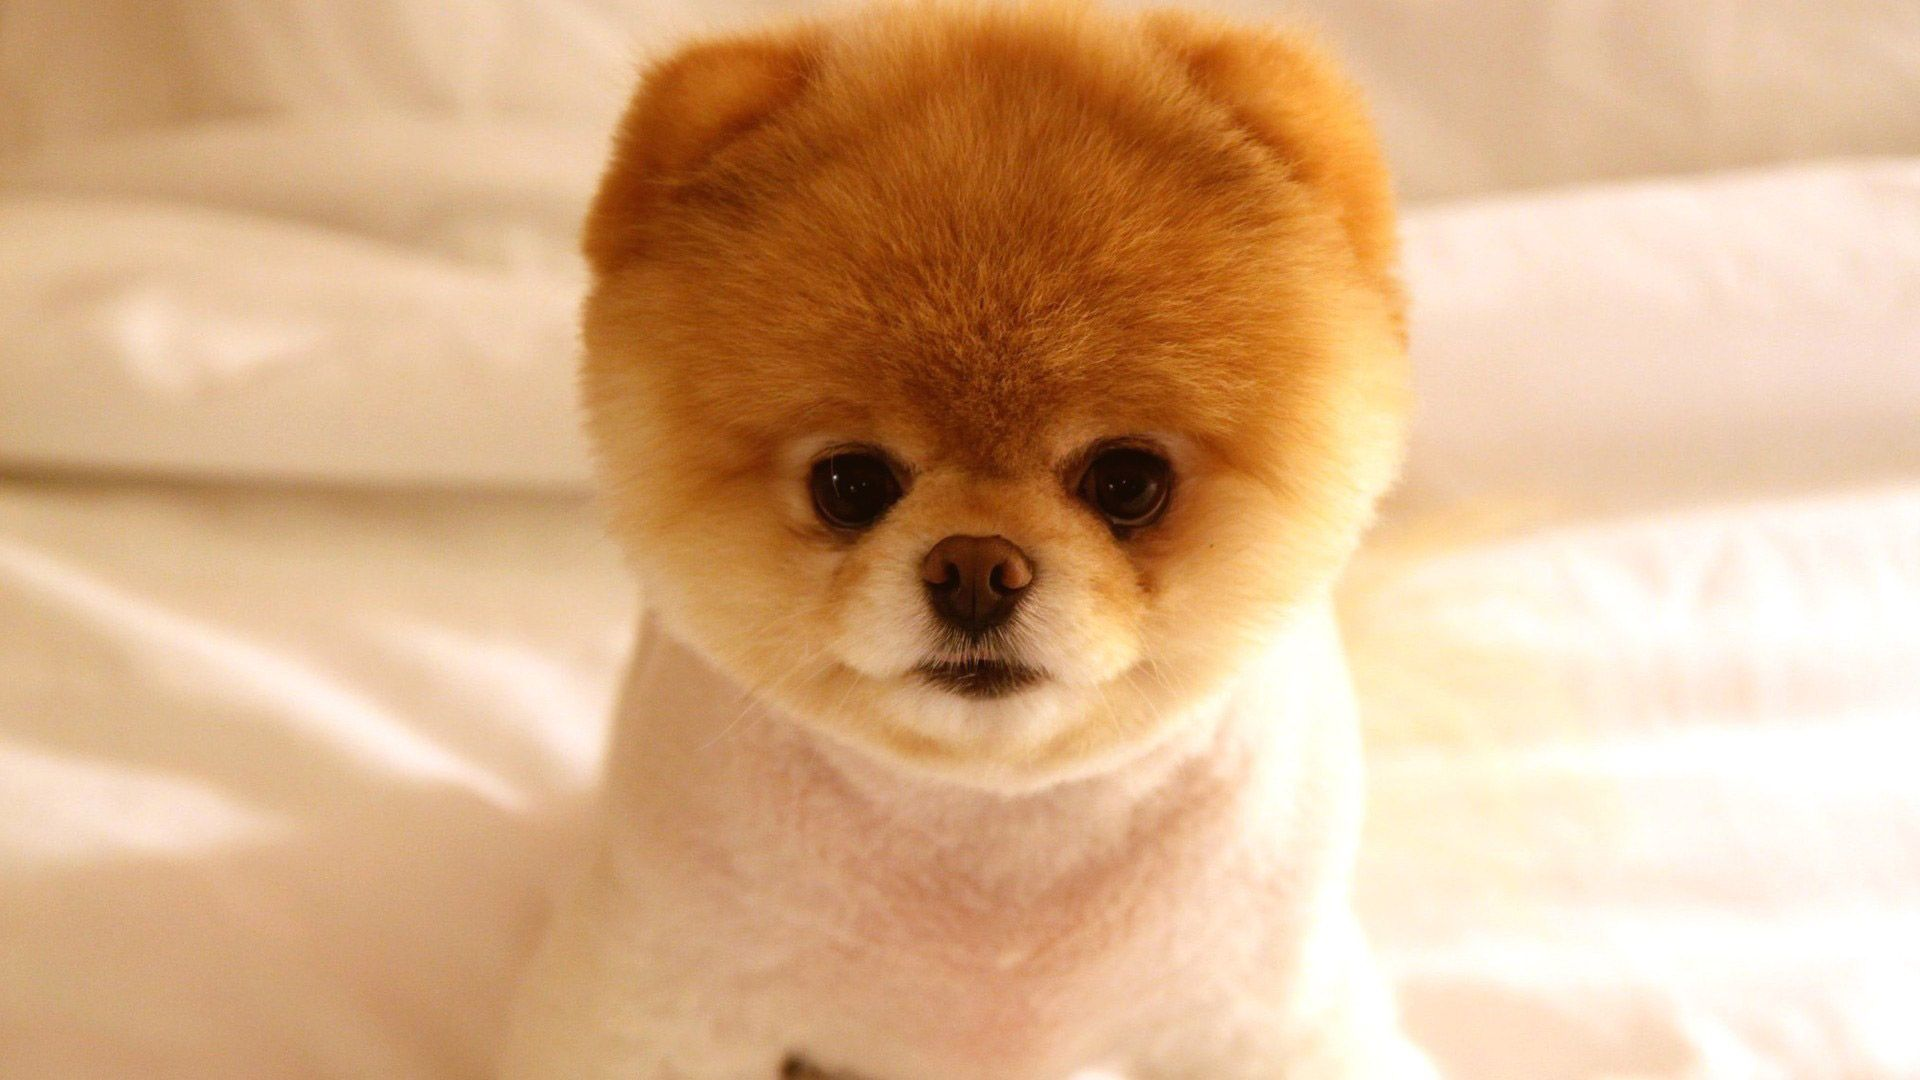 Hd Tiny Dog Pics Cute Dogs Breeds Baby Animals Pictures Cute Animals